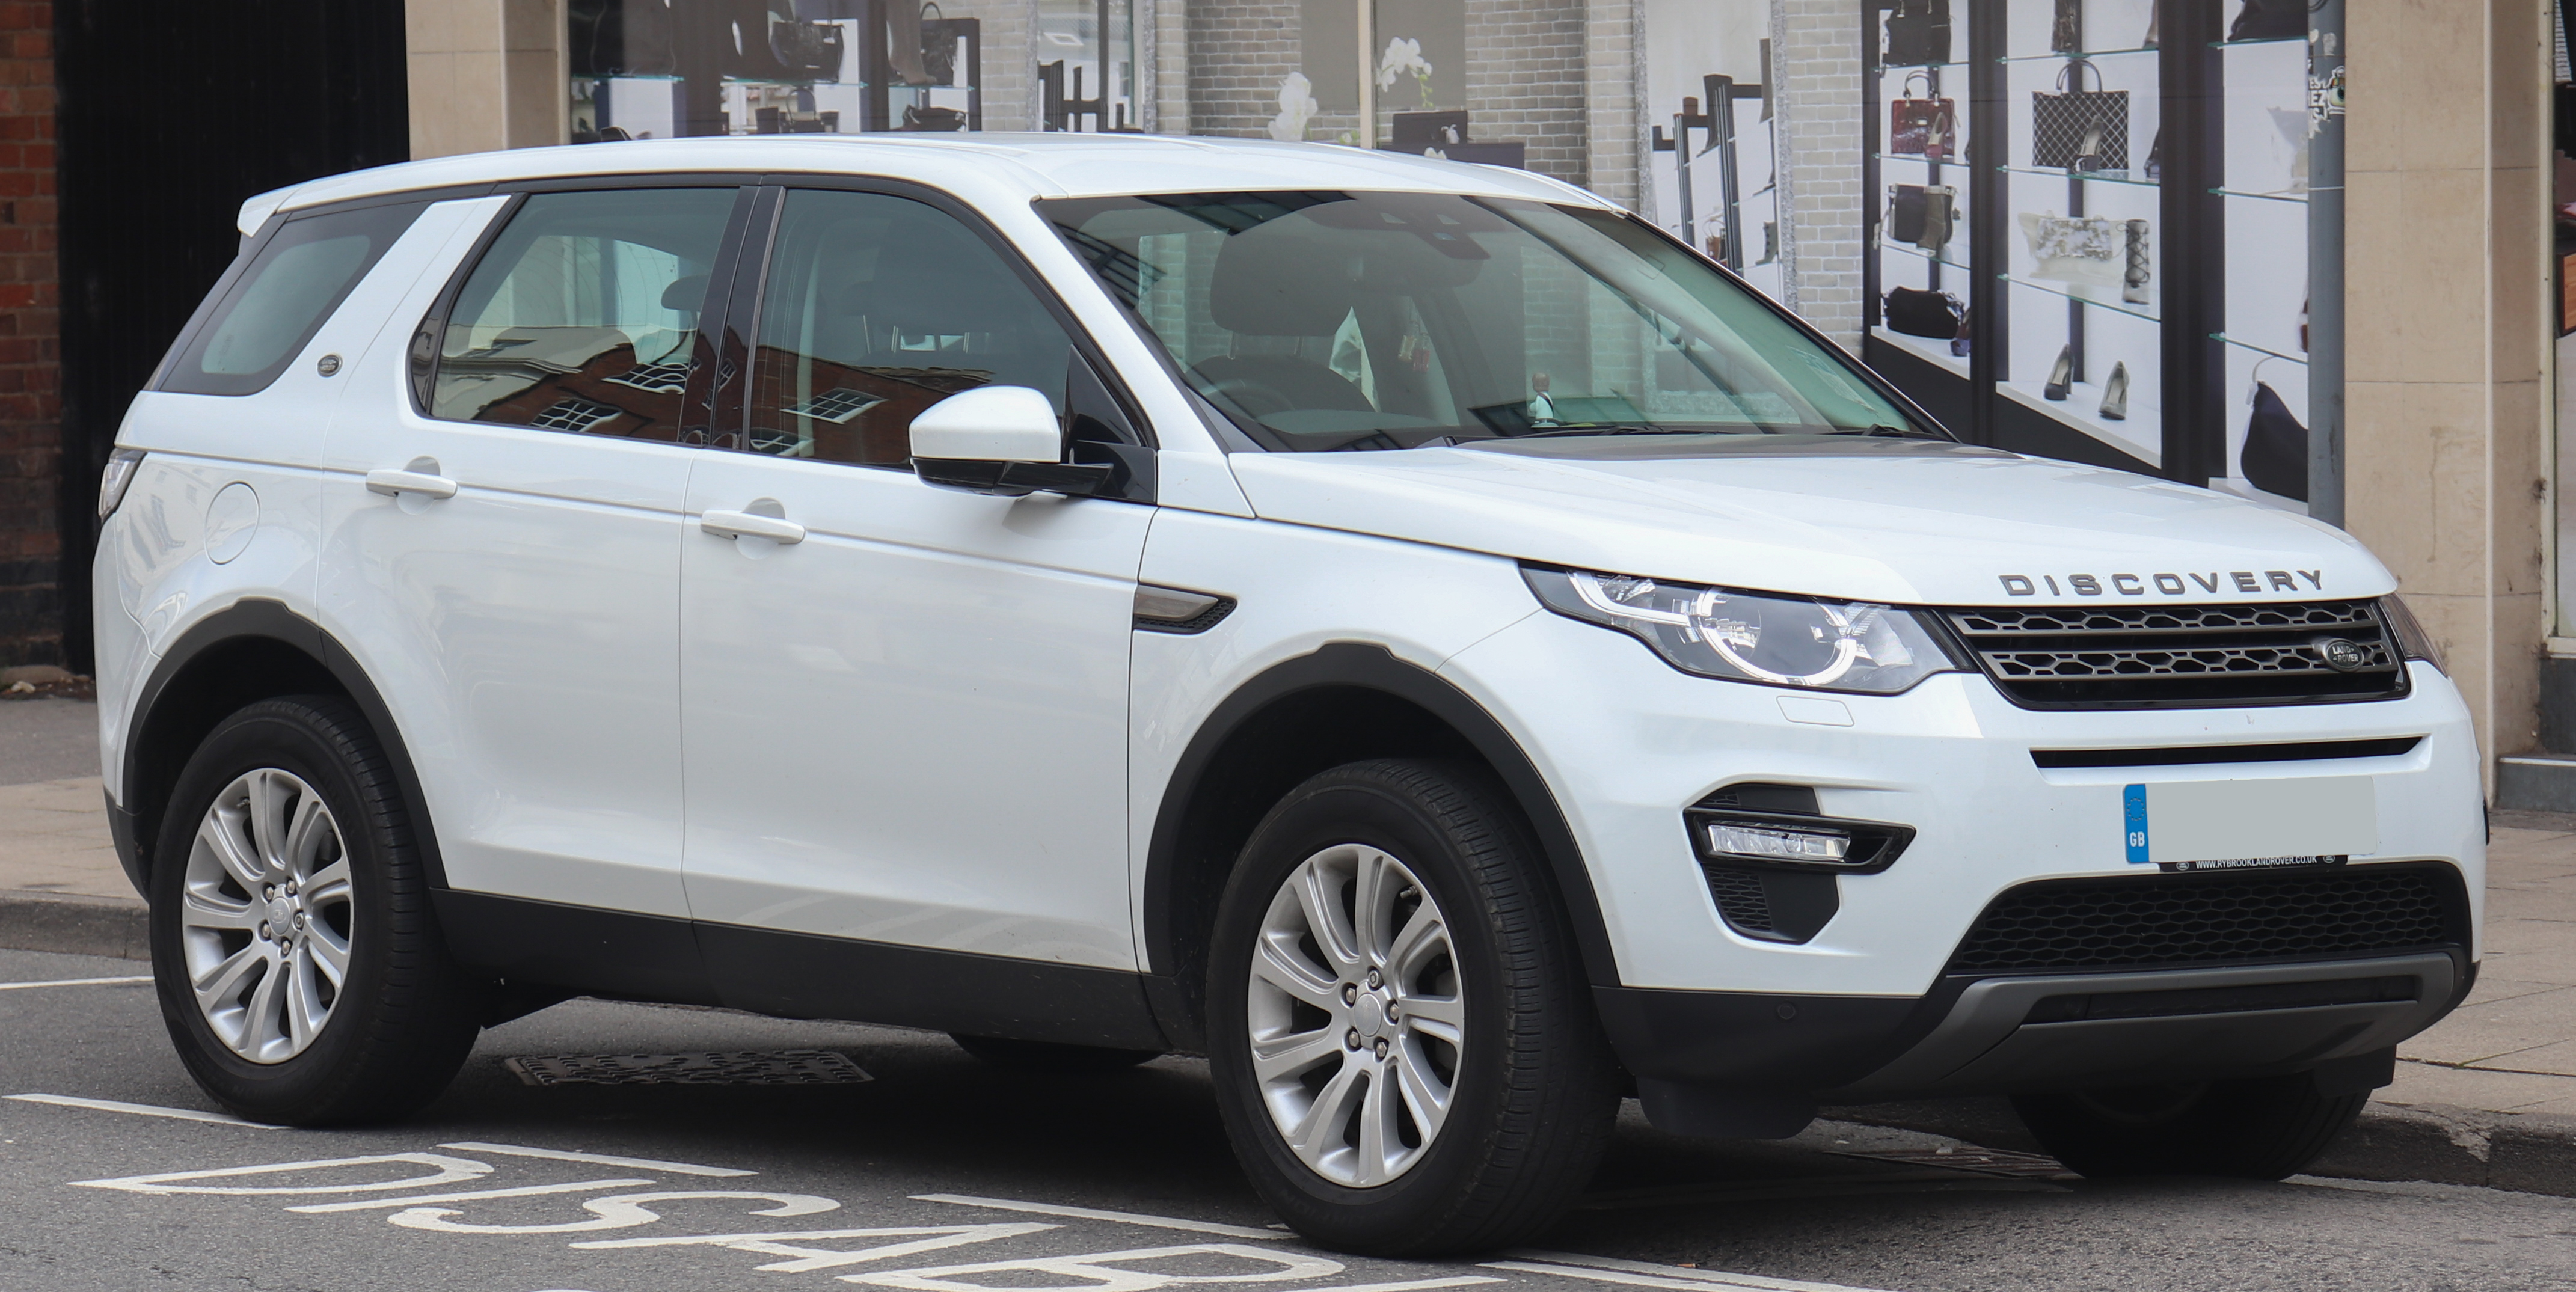 Land Rover Discovery Sport - Wikipedia